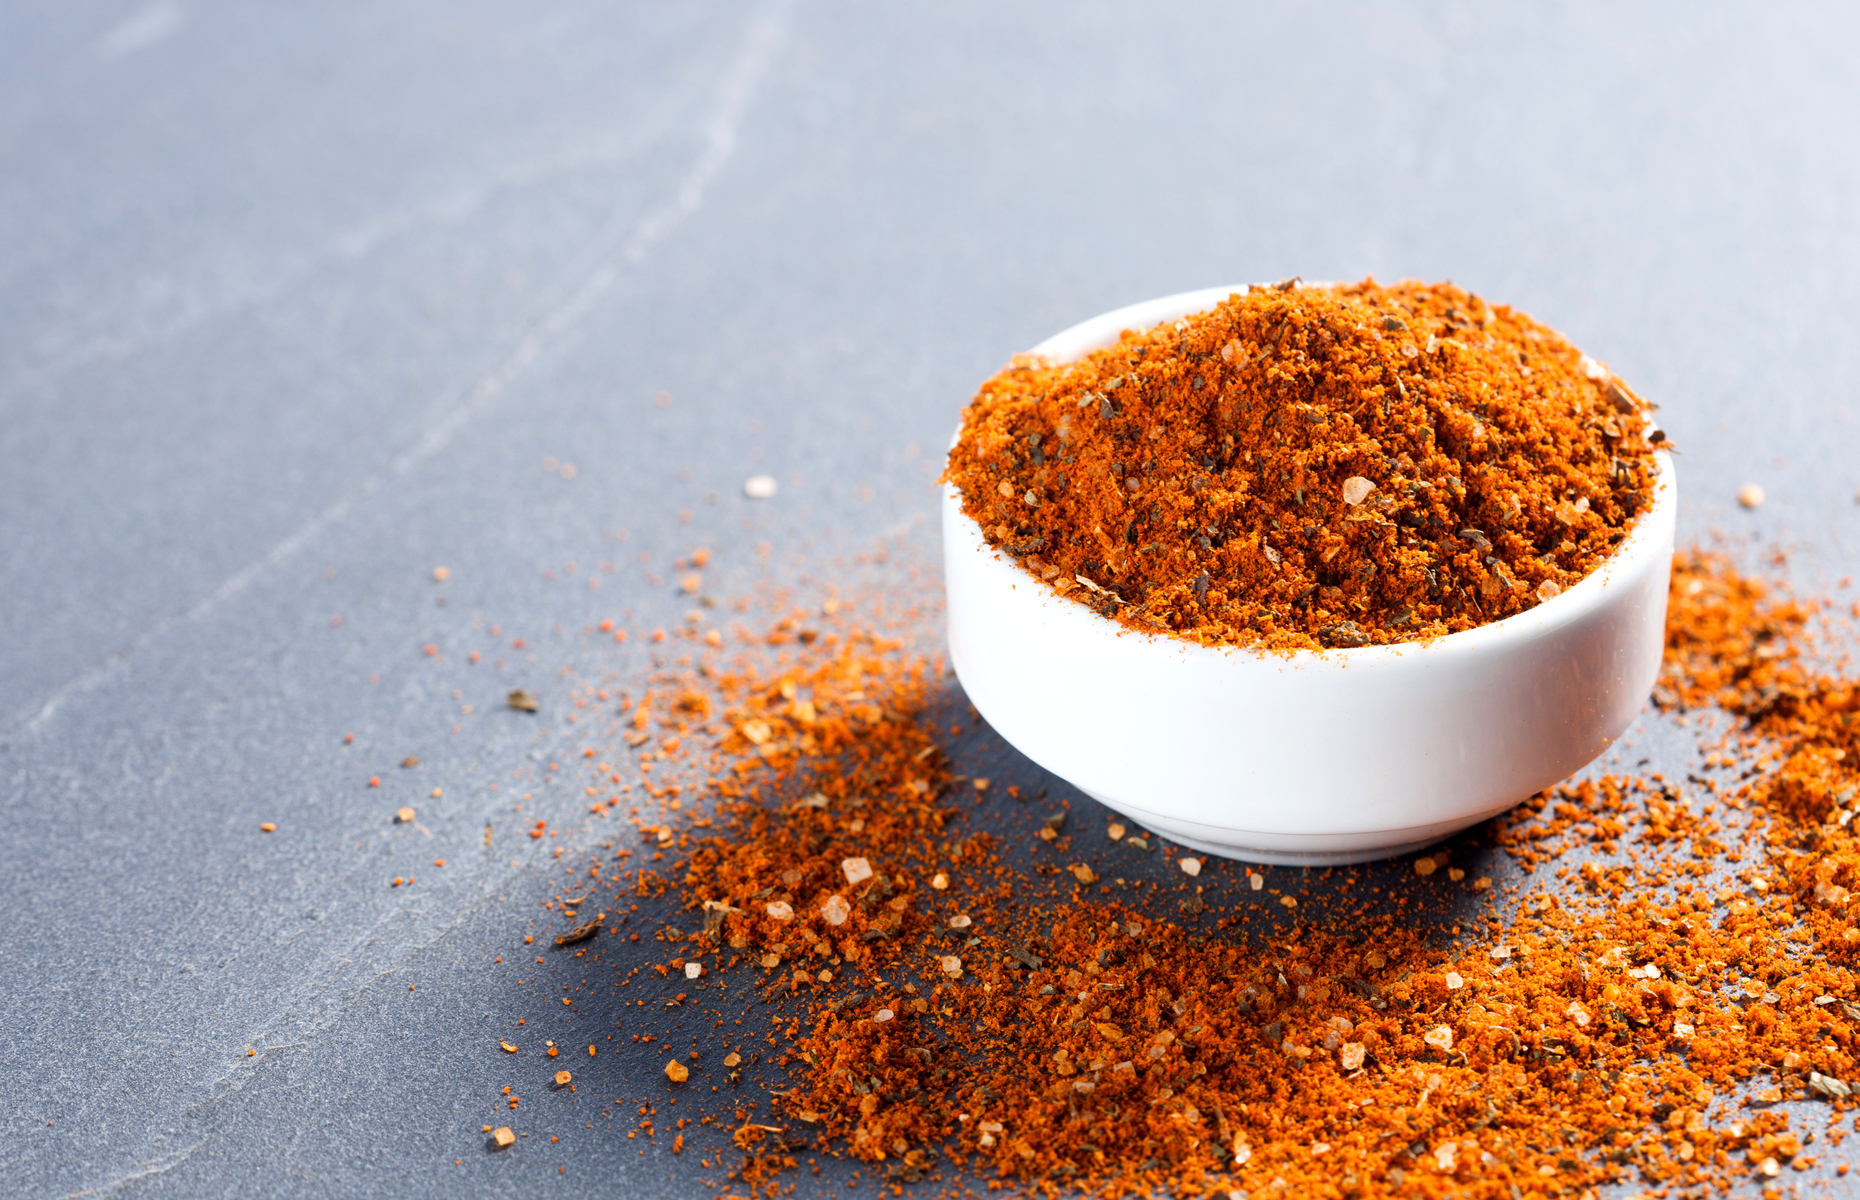 Ground chillies and spices in a pot (Image: avs/Shutterstock)